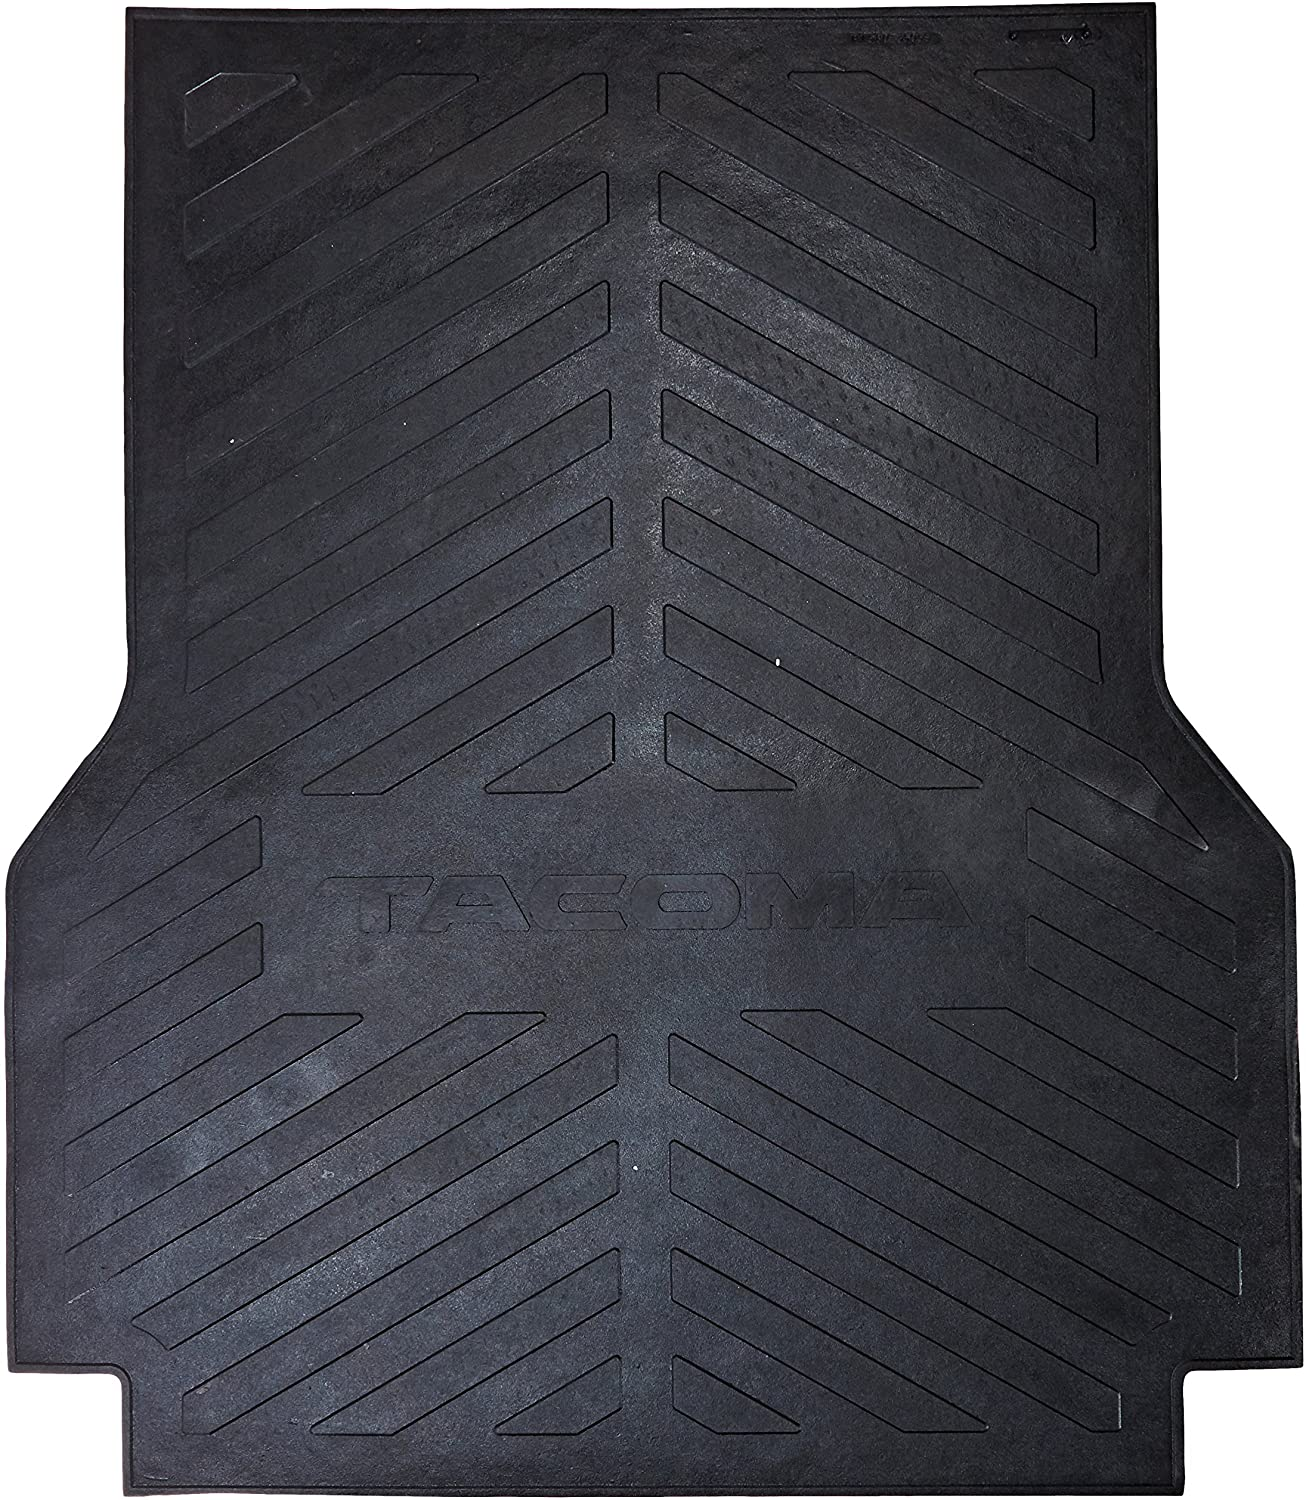 amazon com toyota accessories pt580 35050 sb bed mat for short bed tacoma models automotive toyota accessories pt580 35050 sb bed mat for short bed tacoma models